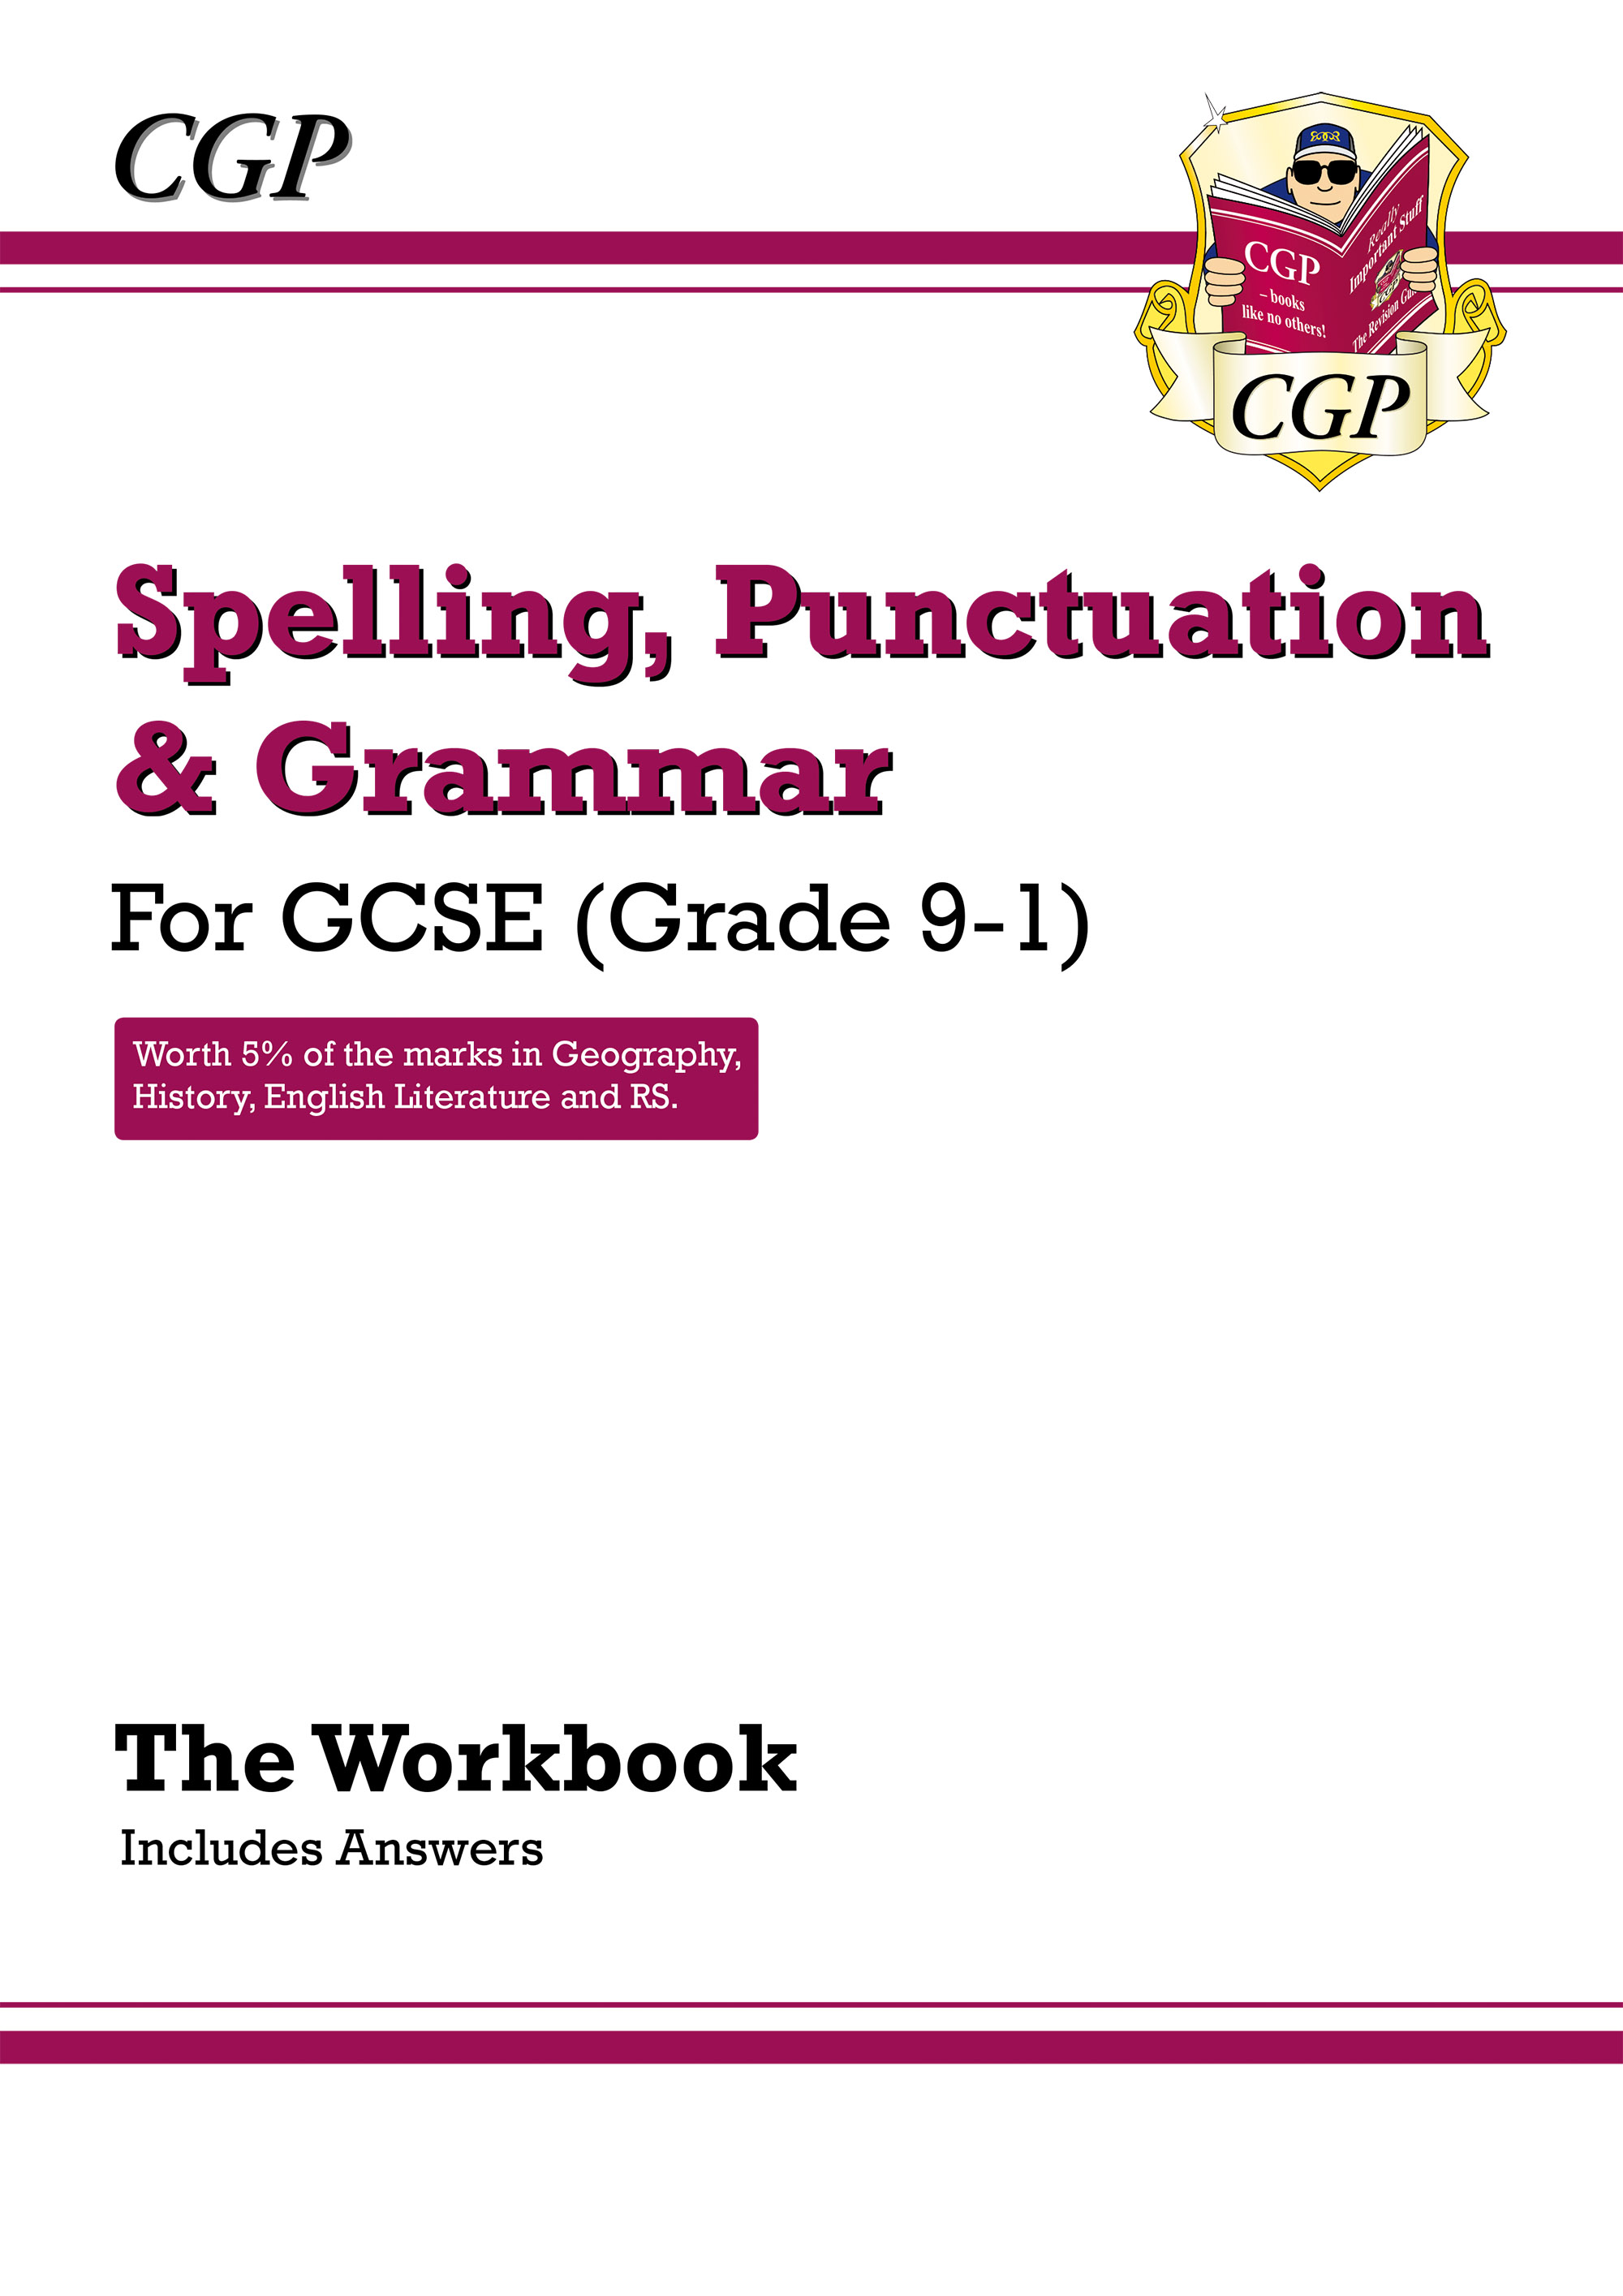 EGW42DK - Spelling, Punctuation and Grammar for Grade 9-1 GCSE Workbook (includes Answers)